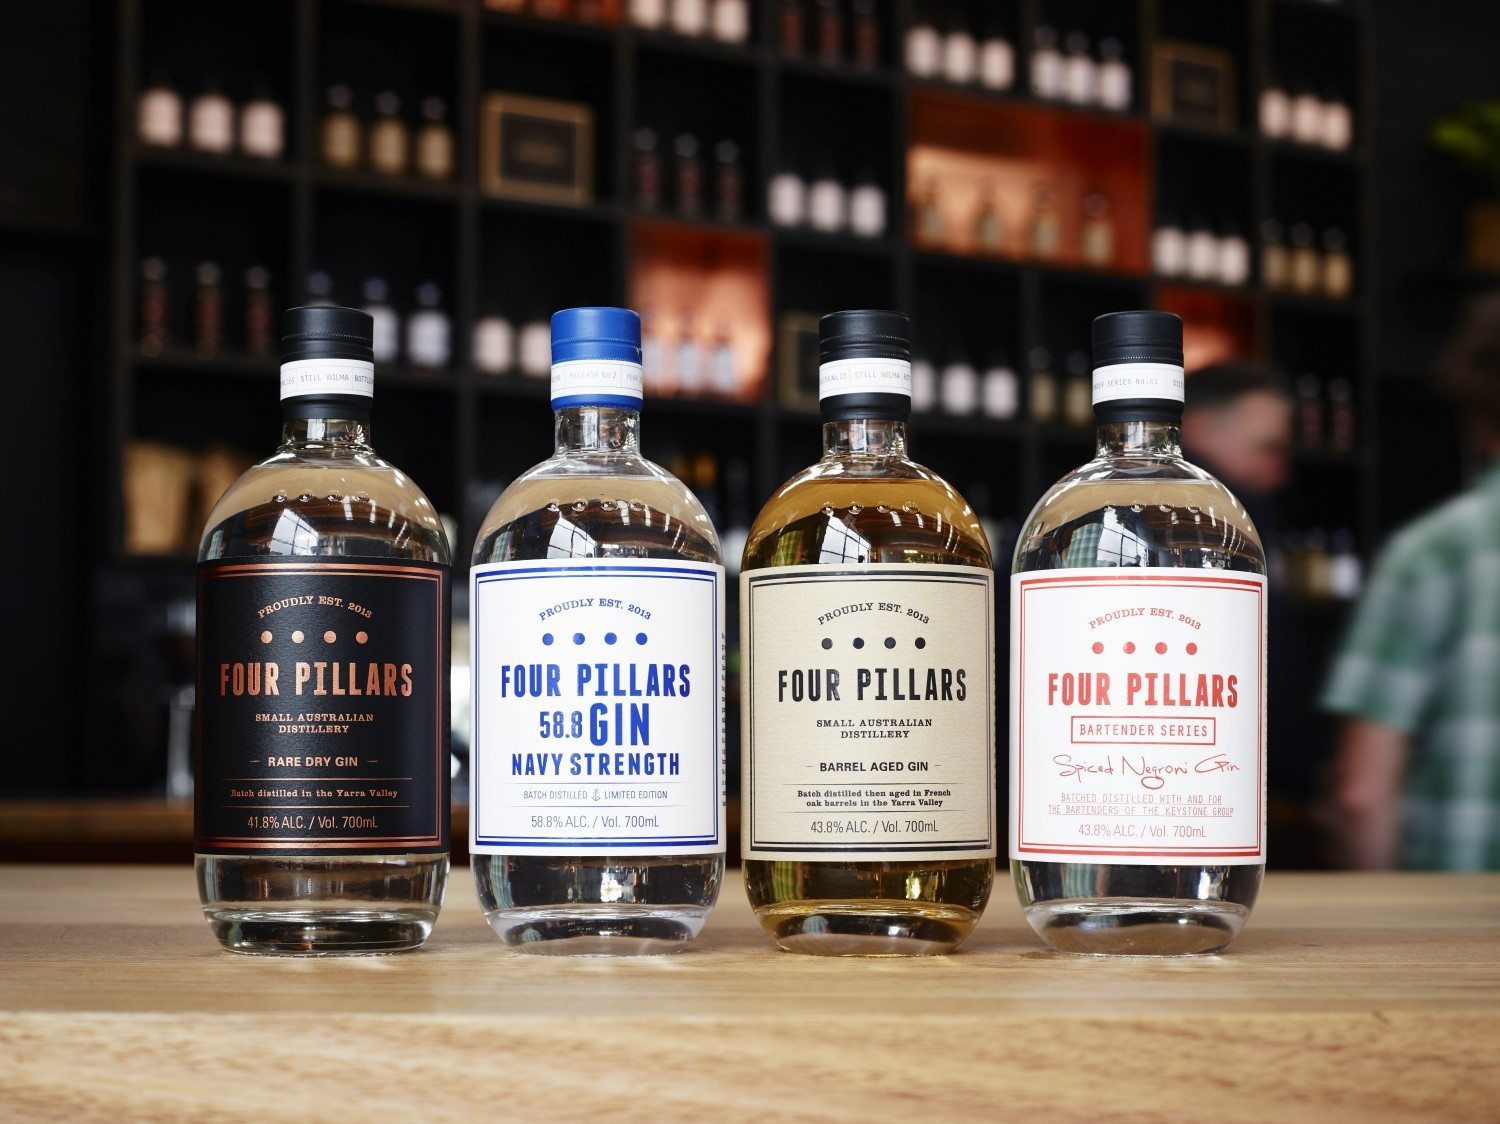 Four Pillars Gin invites you to an Australian Happy Hour at Dante on 5/29, co-founder Stuart Gregor talks more about the brand and more